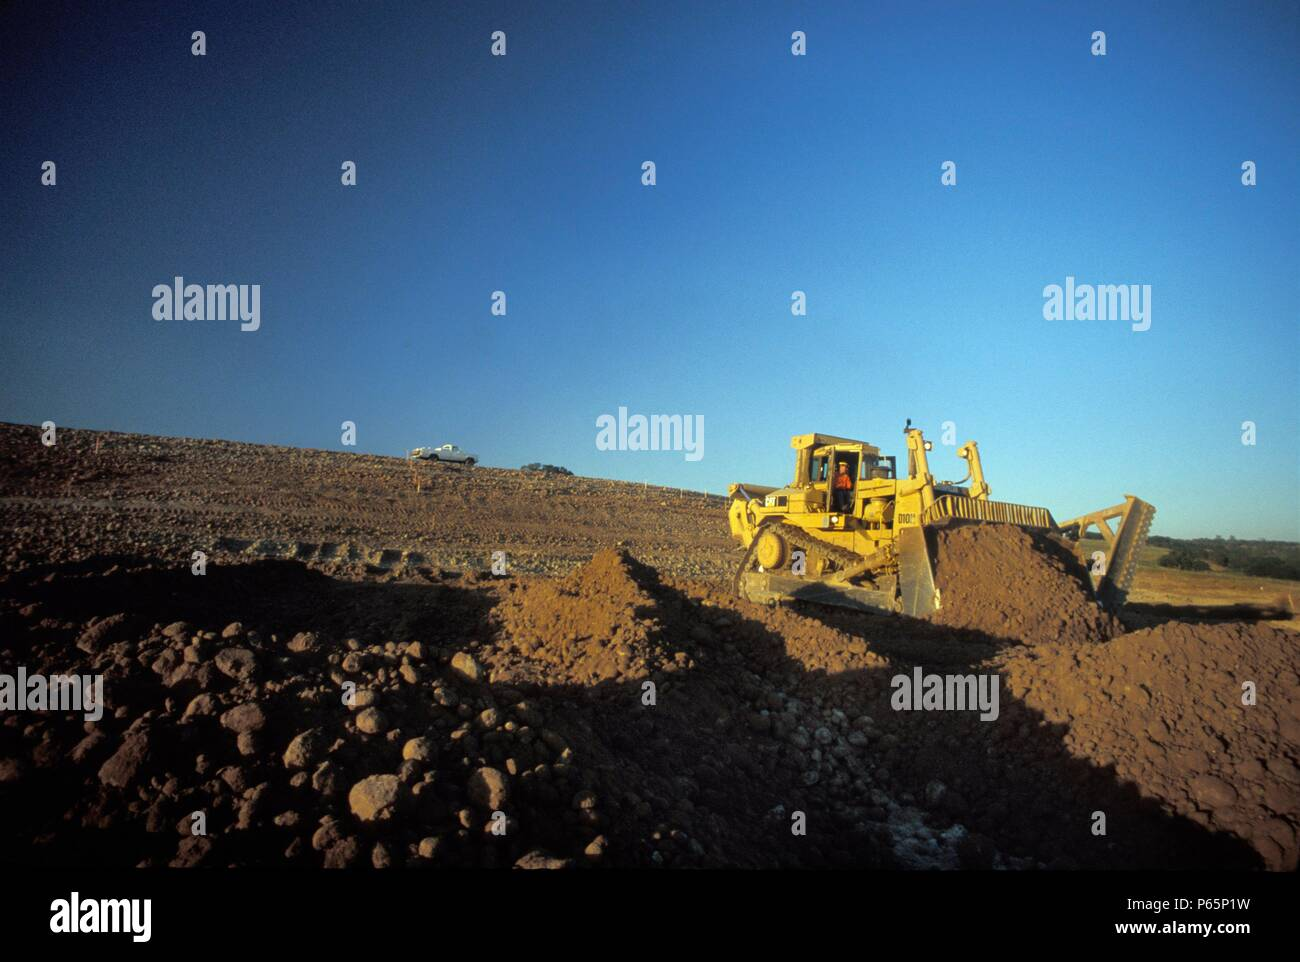 Bulldozer moving dirt for large California housing development, USA Stock Photo